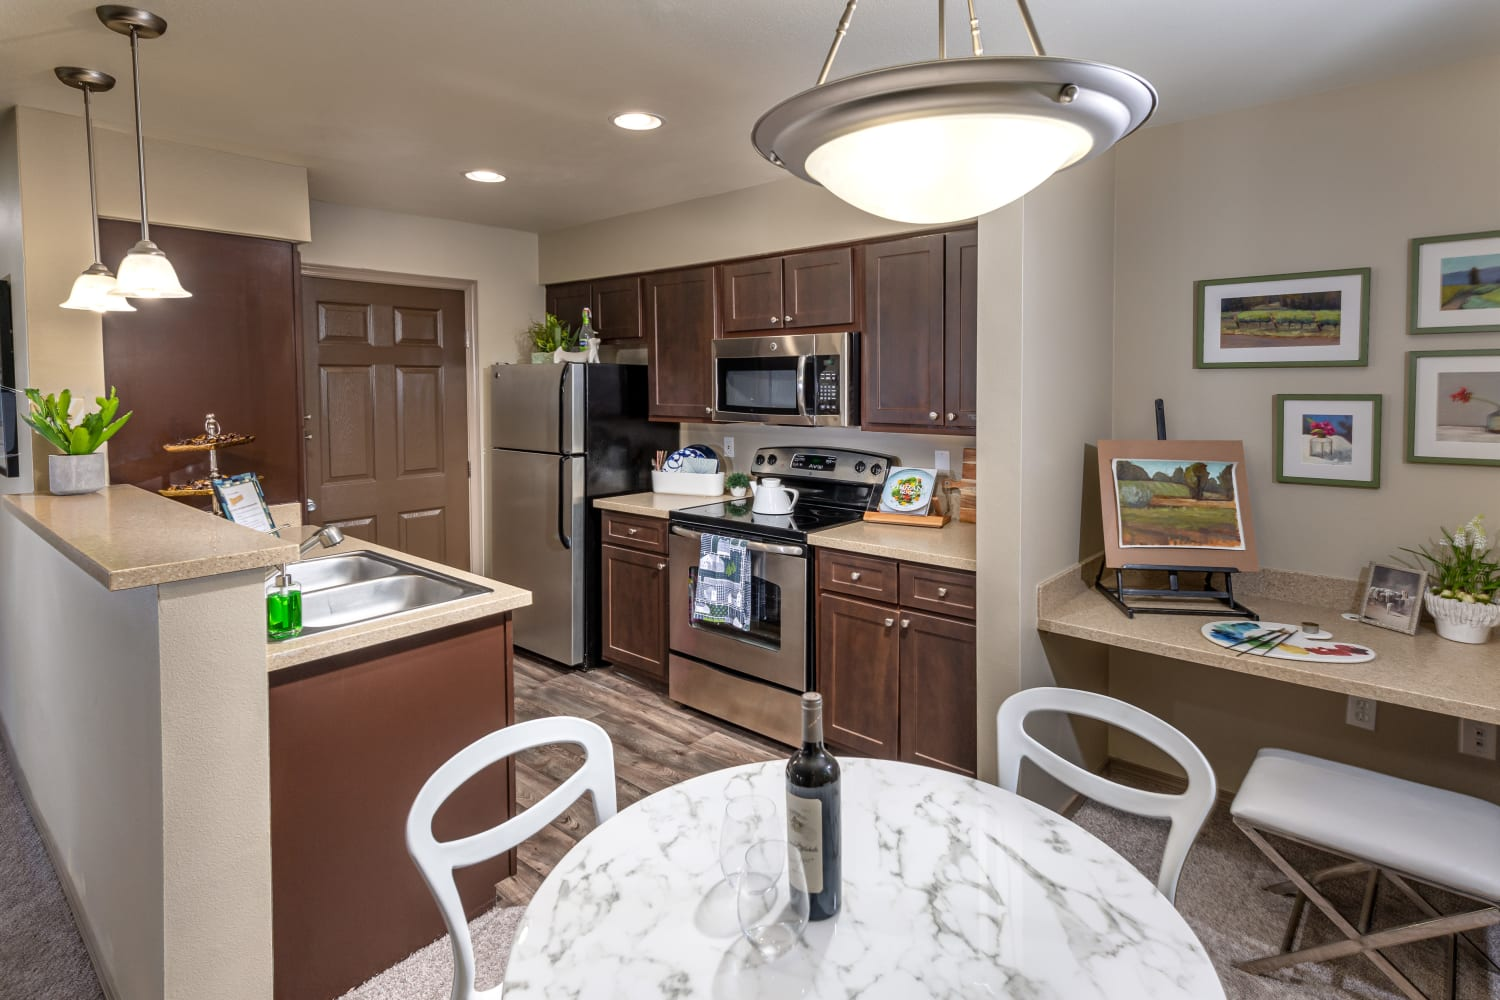 Model kitchen and dining room at The Knolls at Inglewood Hill in Sammamish, Washington